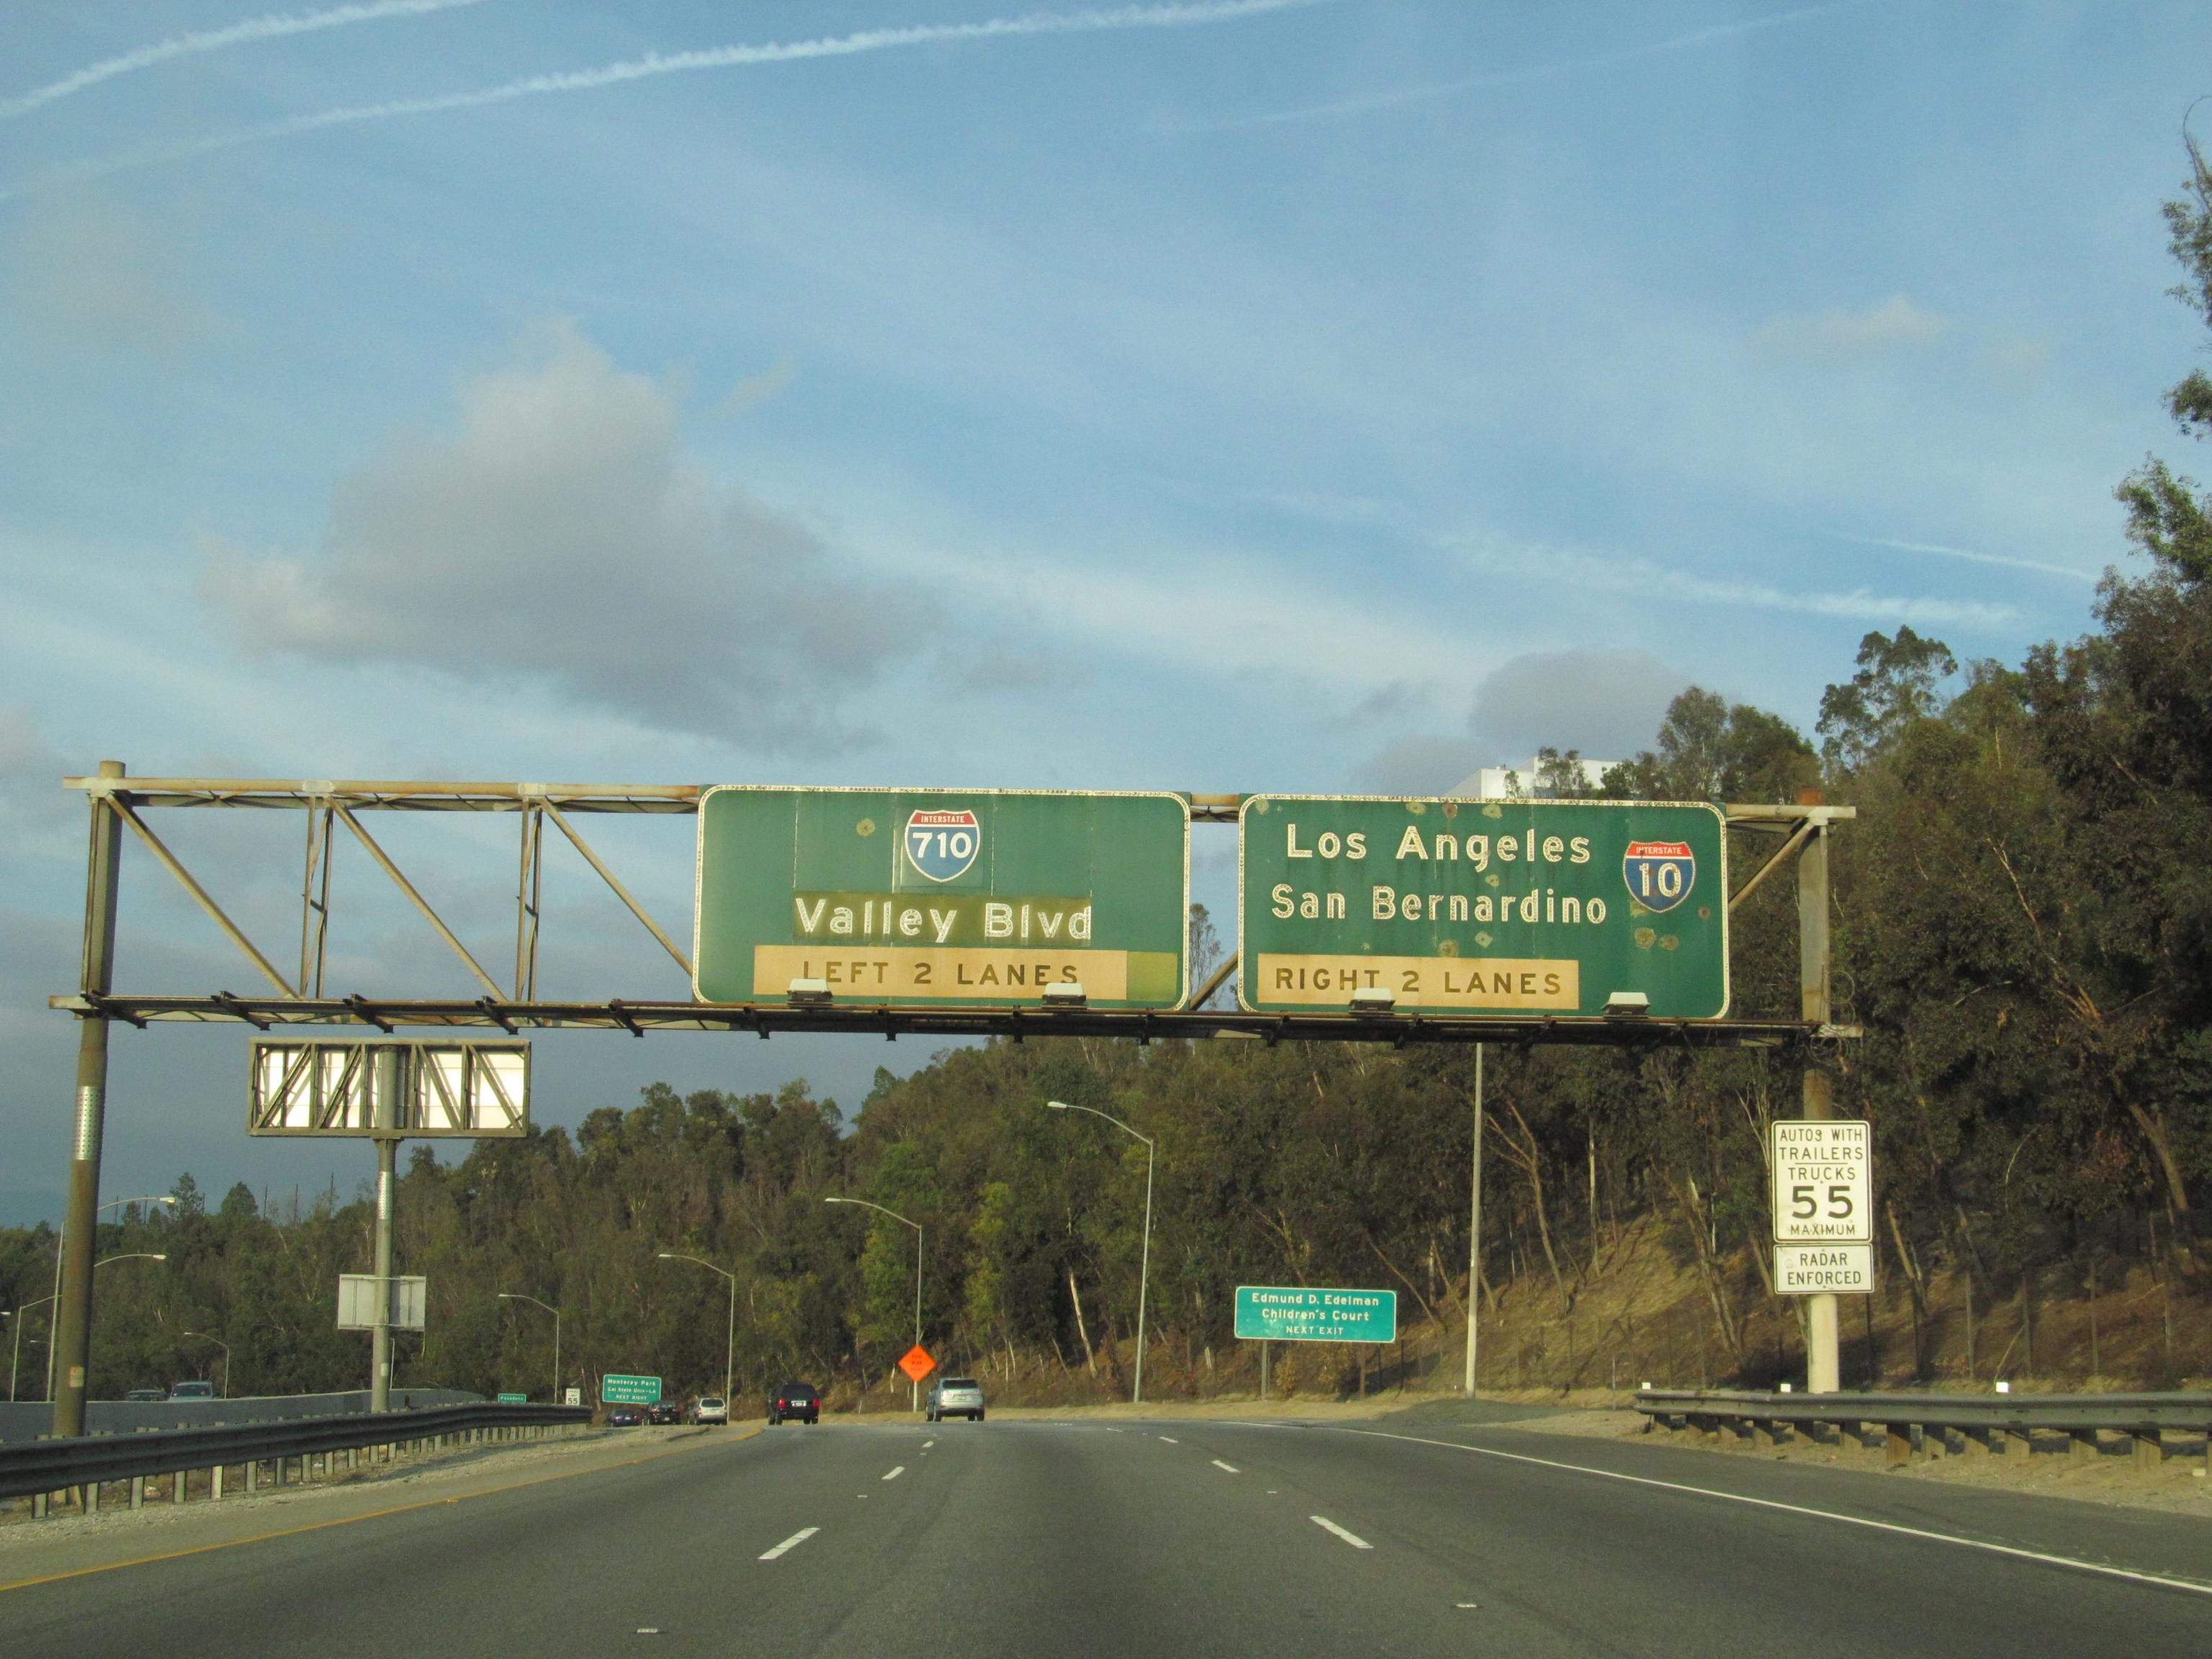 The ending stretch of the 710